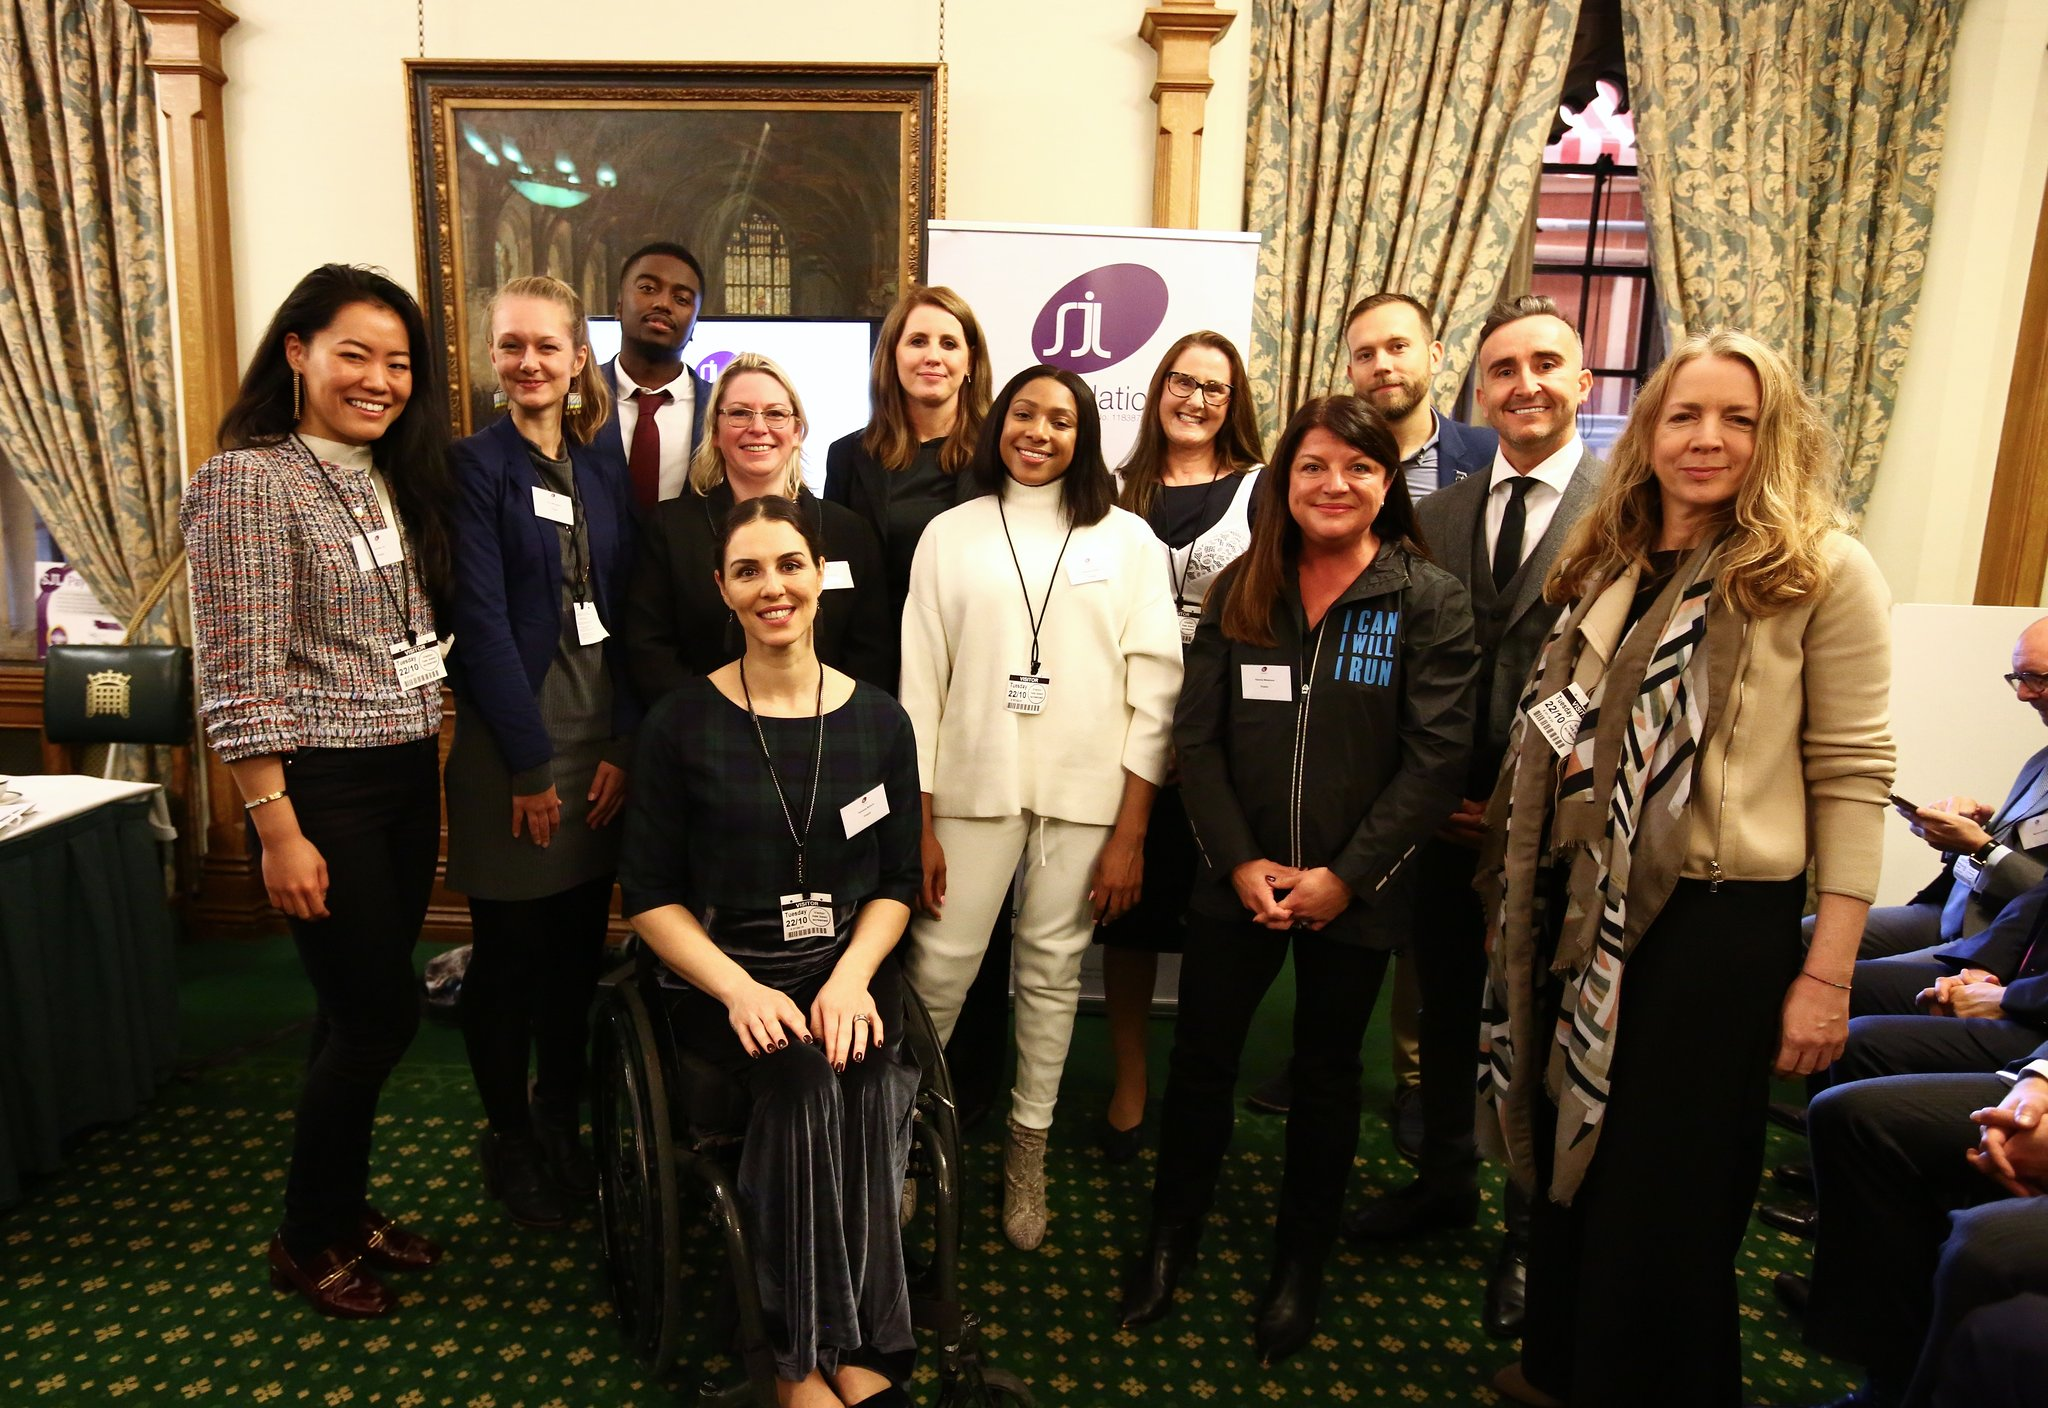 Westminster pitching event show's what's needed for funding success today